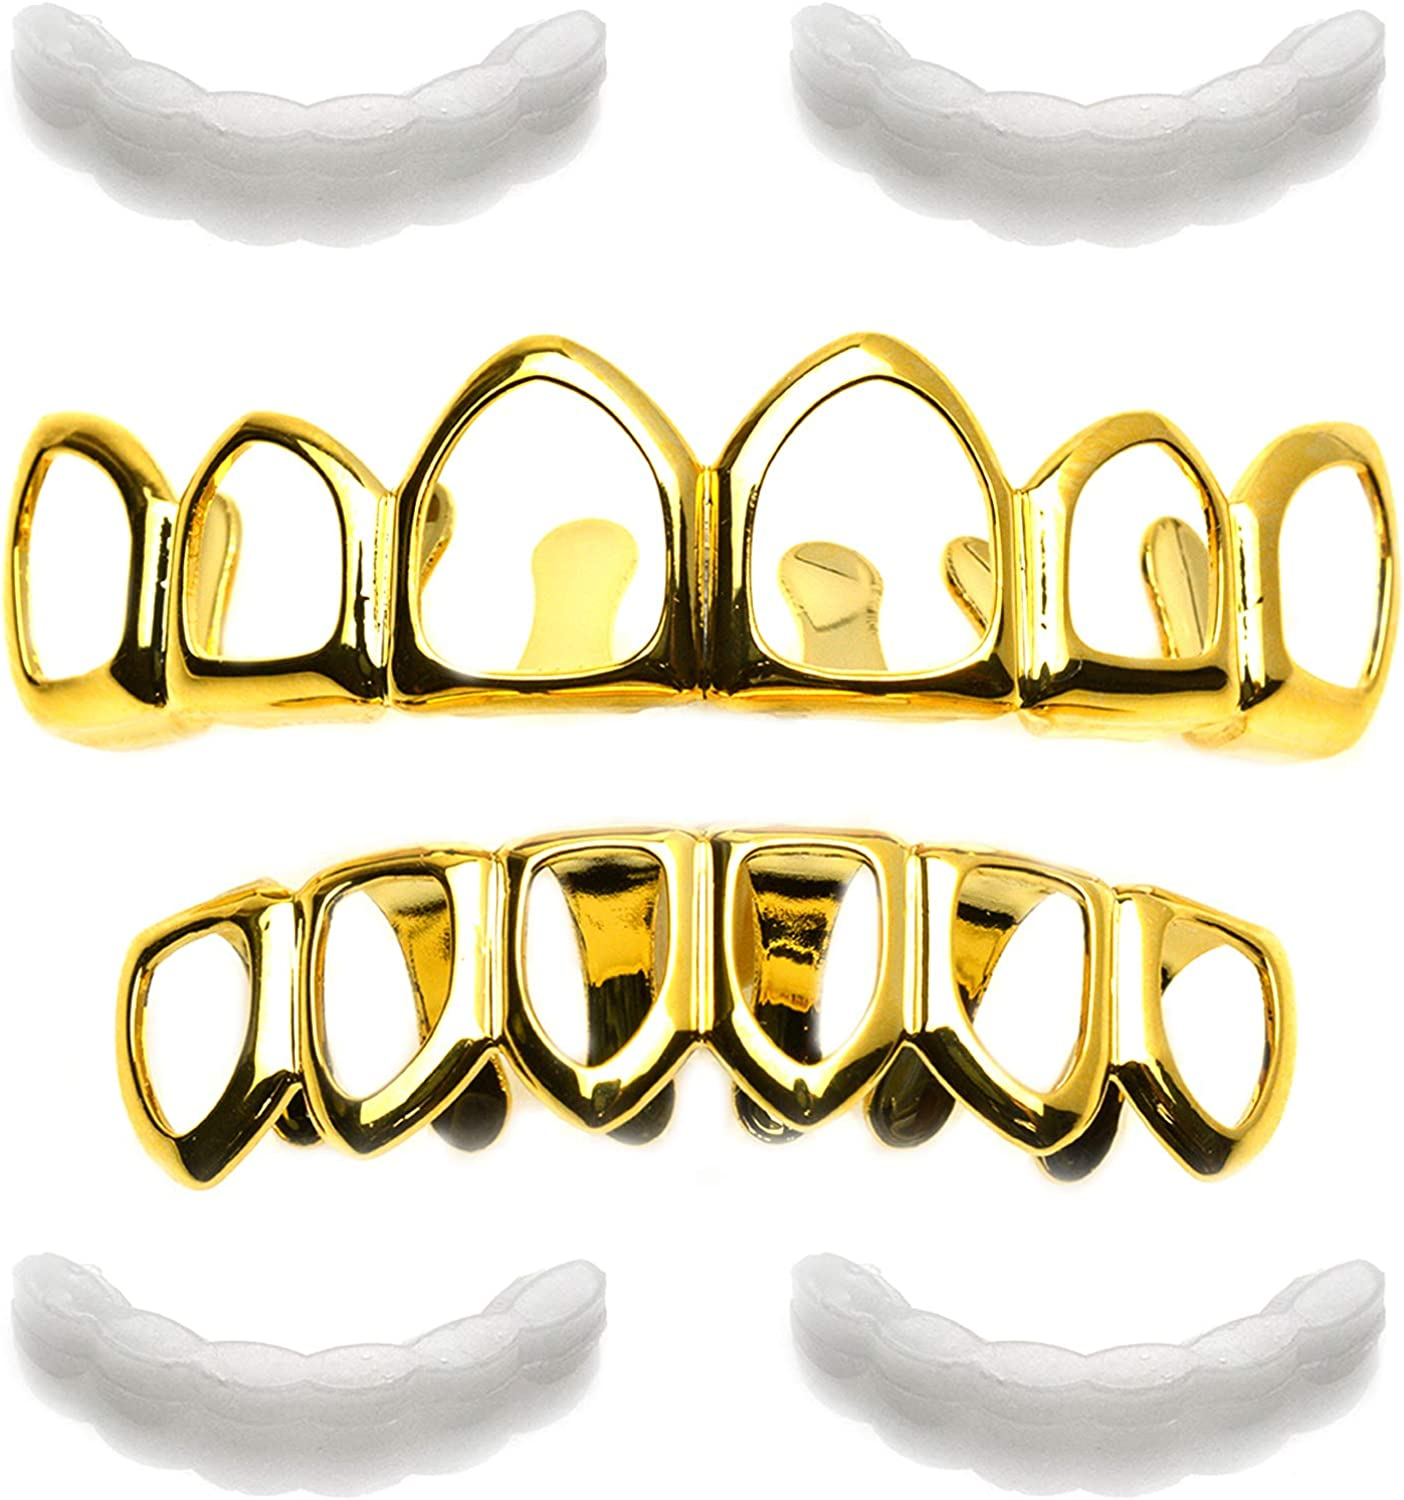 metaltree98 Grillz Solid Plain Six Open Face 14K Gold Plated Teeth Top & Bottom LS 001 6F G